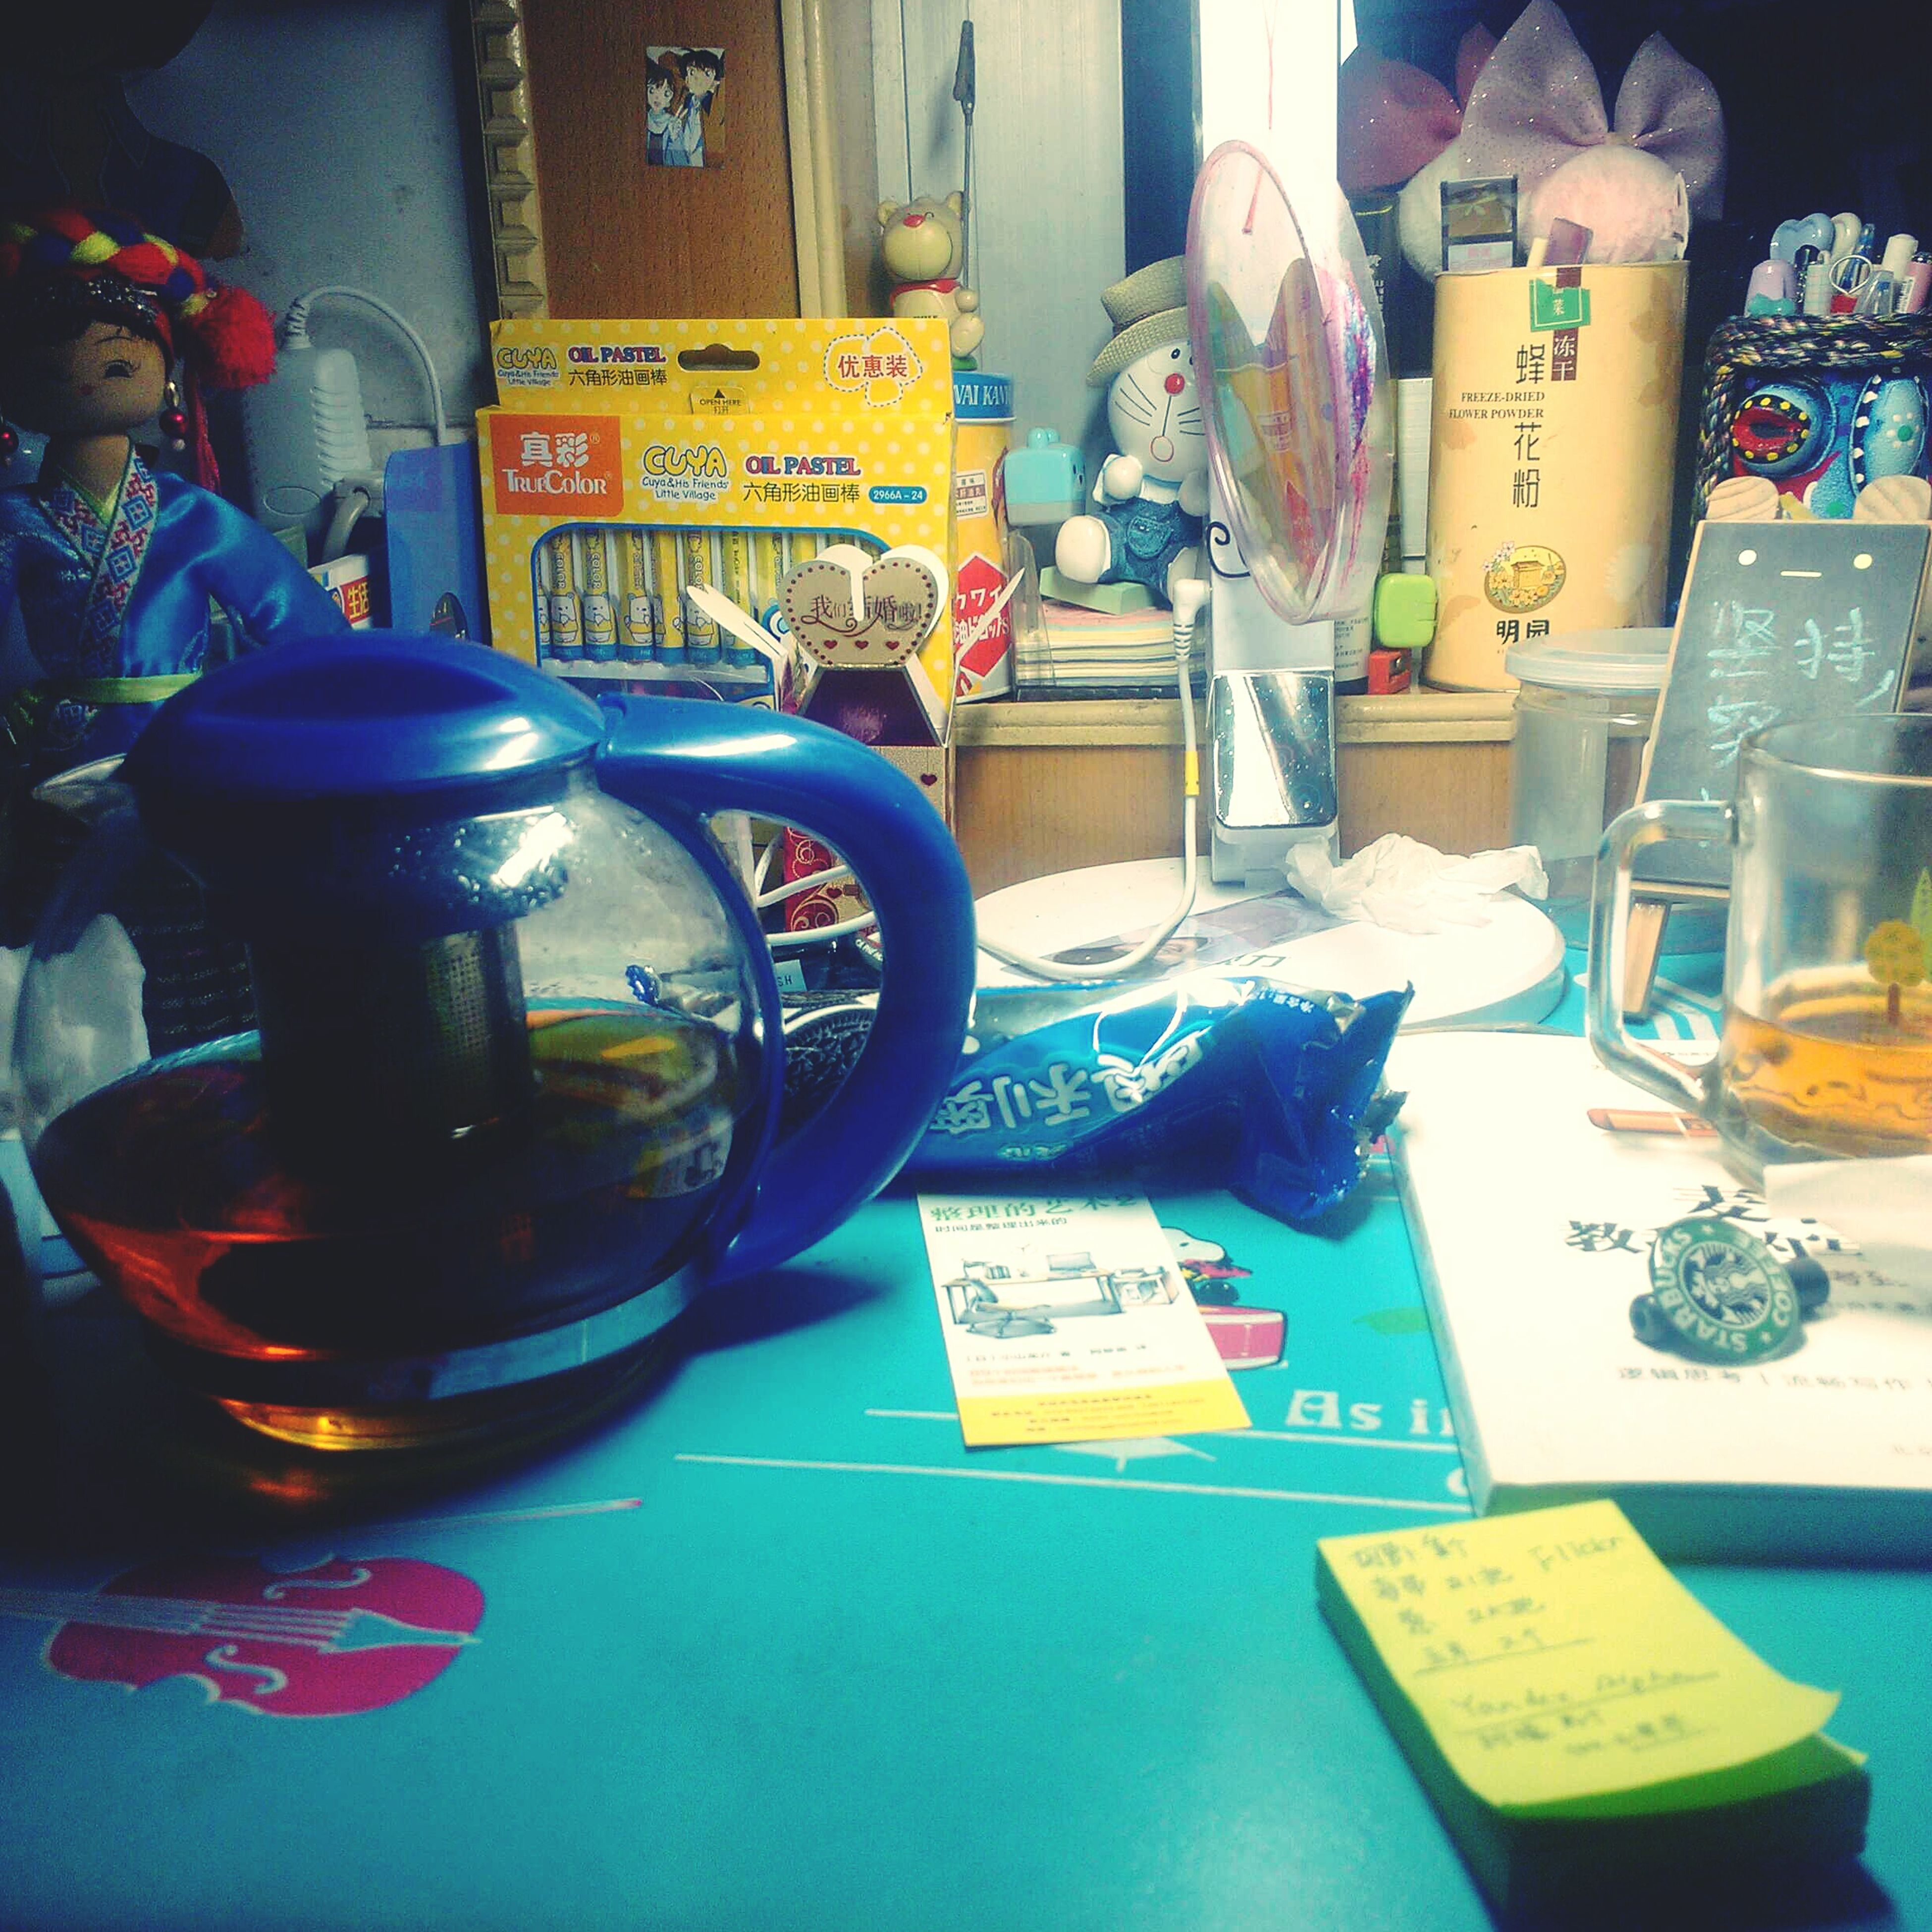 indoors, still life, table, variation, food and drink, bottle, drink, close-up, no people, multi colored, glass - material, jar, drinking glass, container, choice, large group of objects, home interior, blue, plastic, refreshment